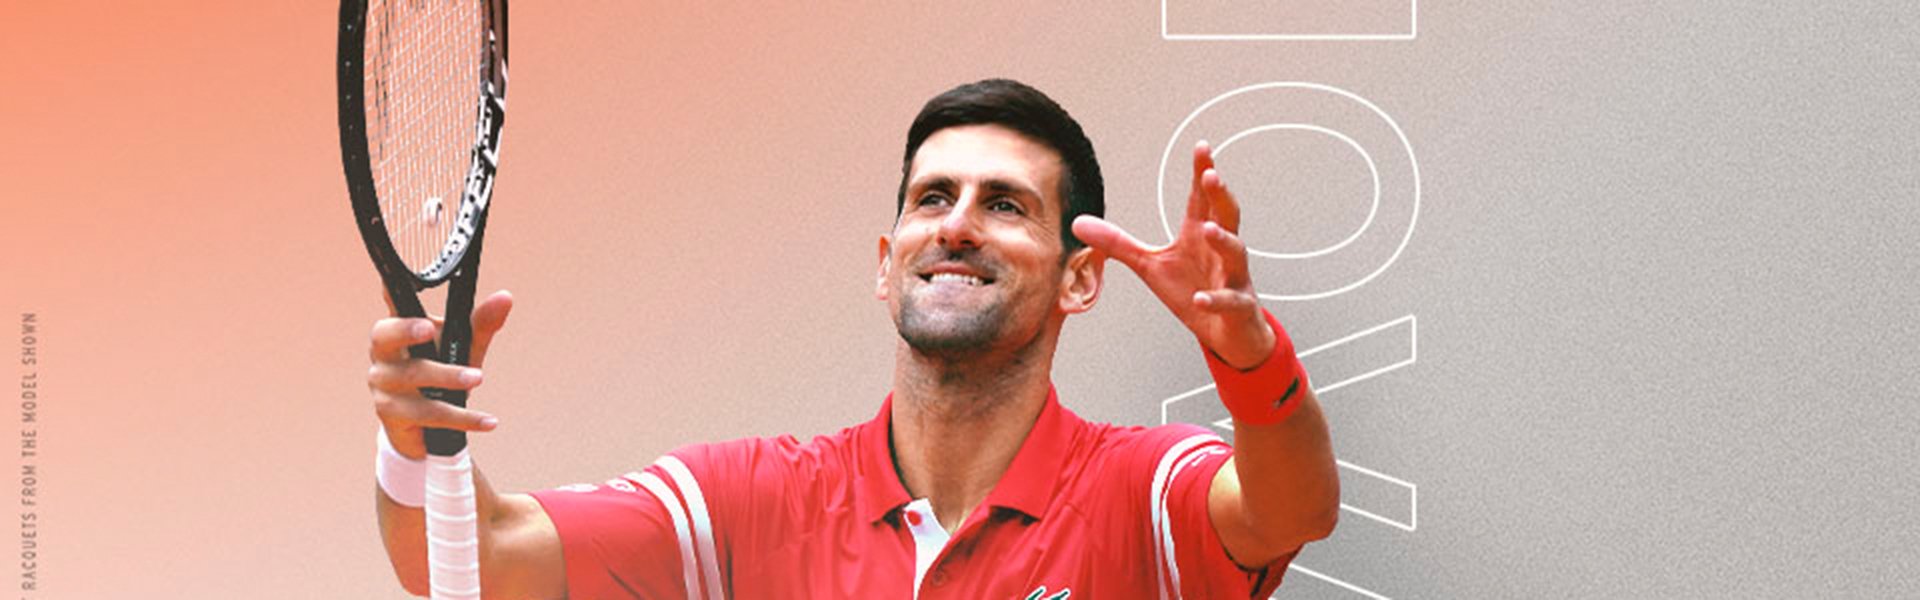 Djokovic HEAD and shoulders above the best in tennis history